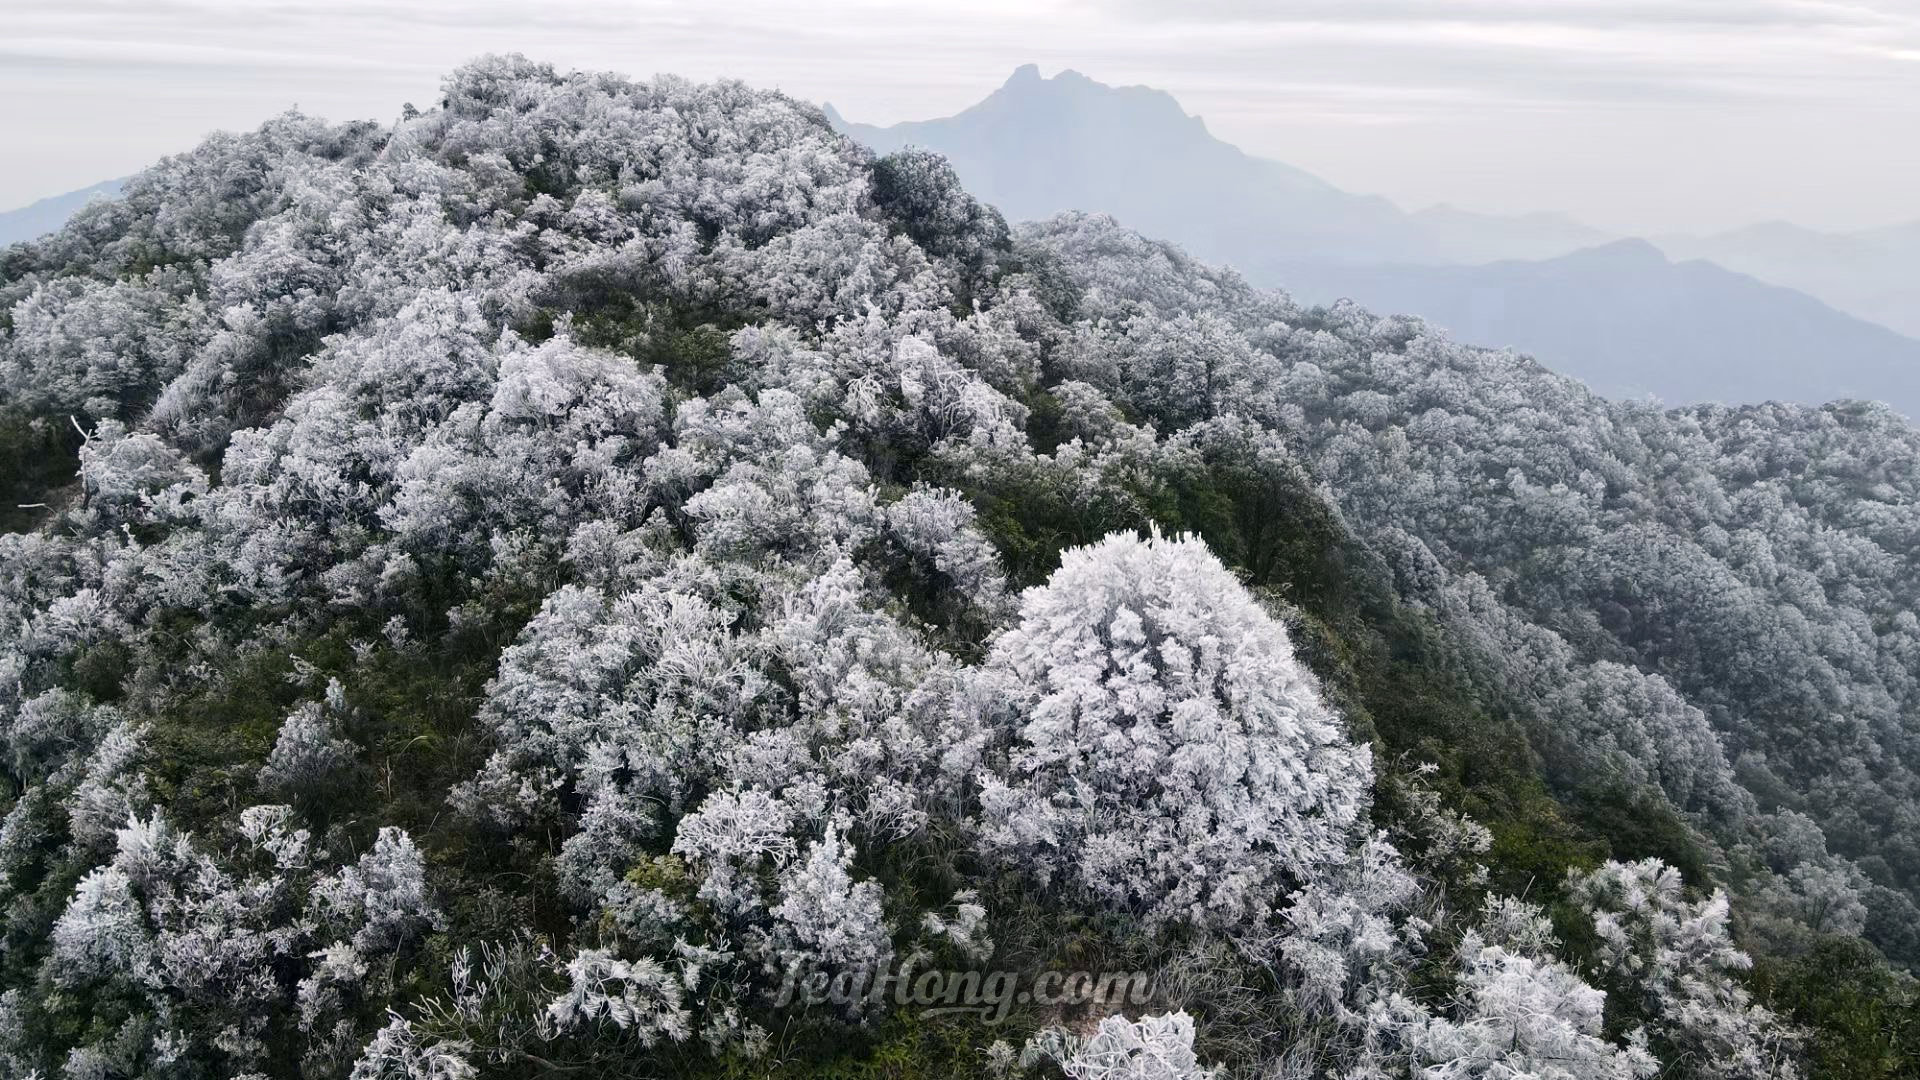 Snow covering tea gardens in Fenghuang Shan